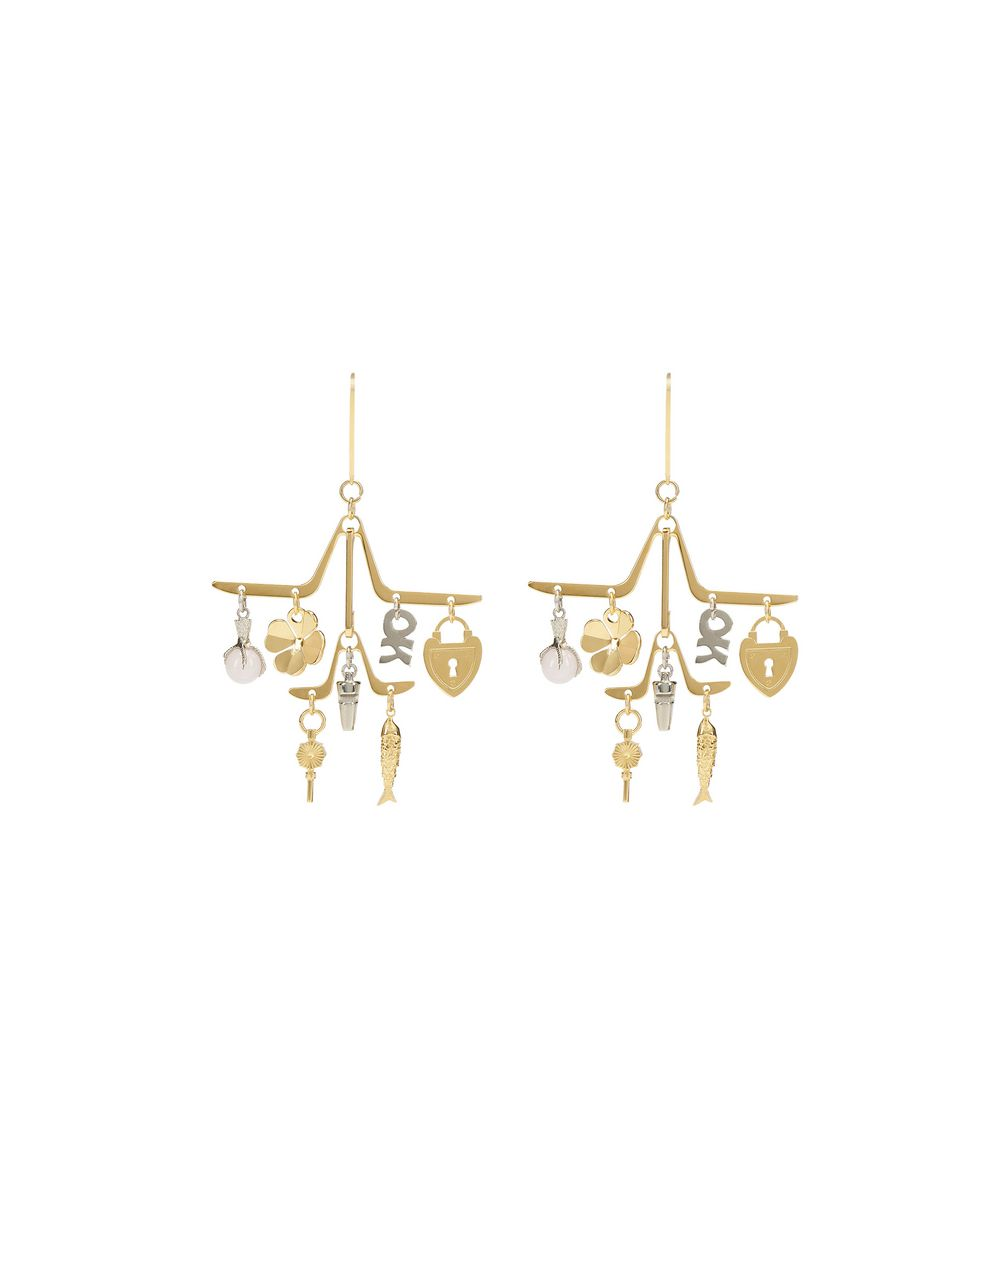 CHARM EARRINGS - Lanvin